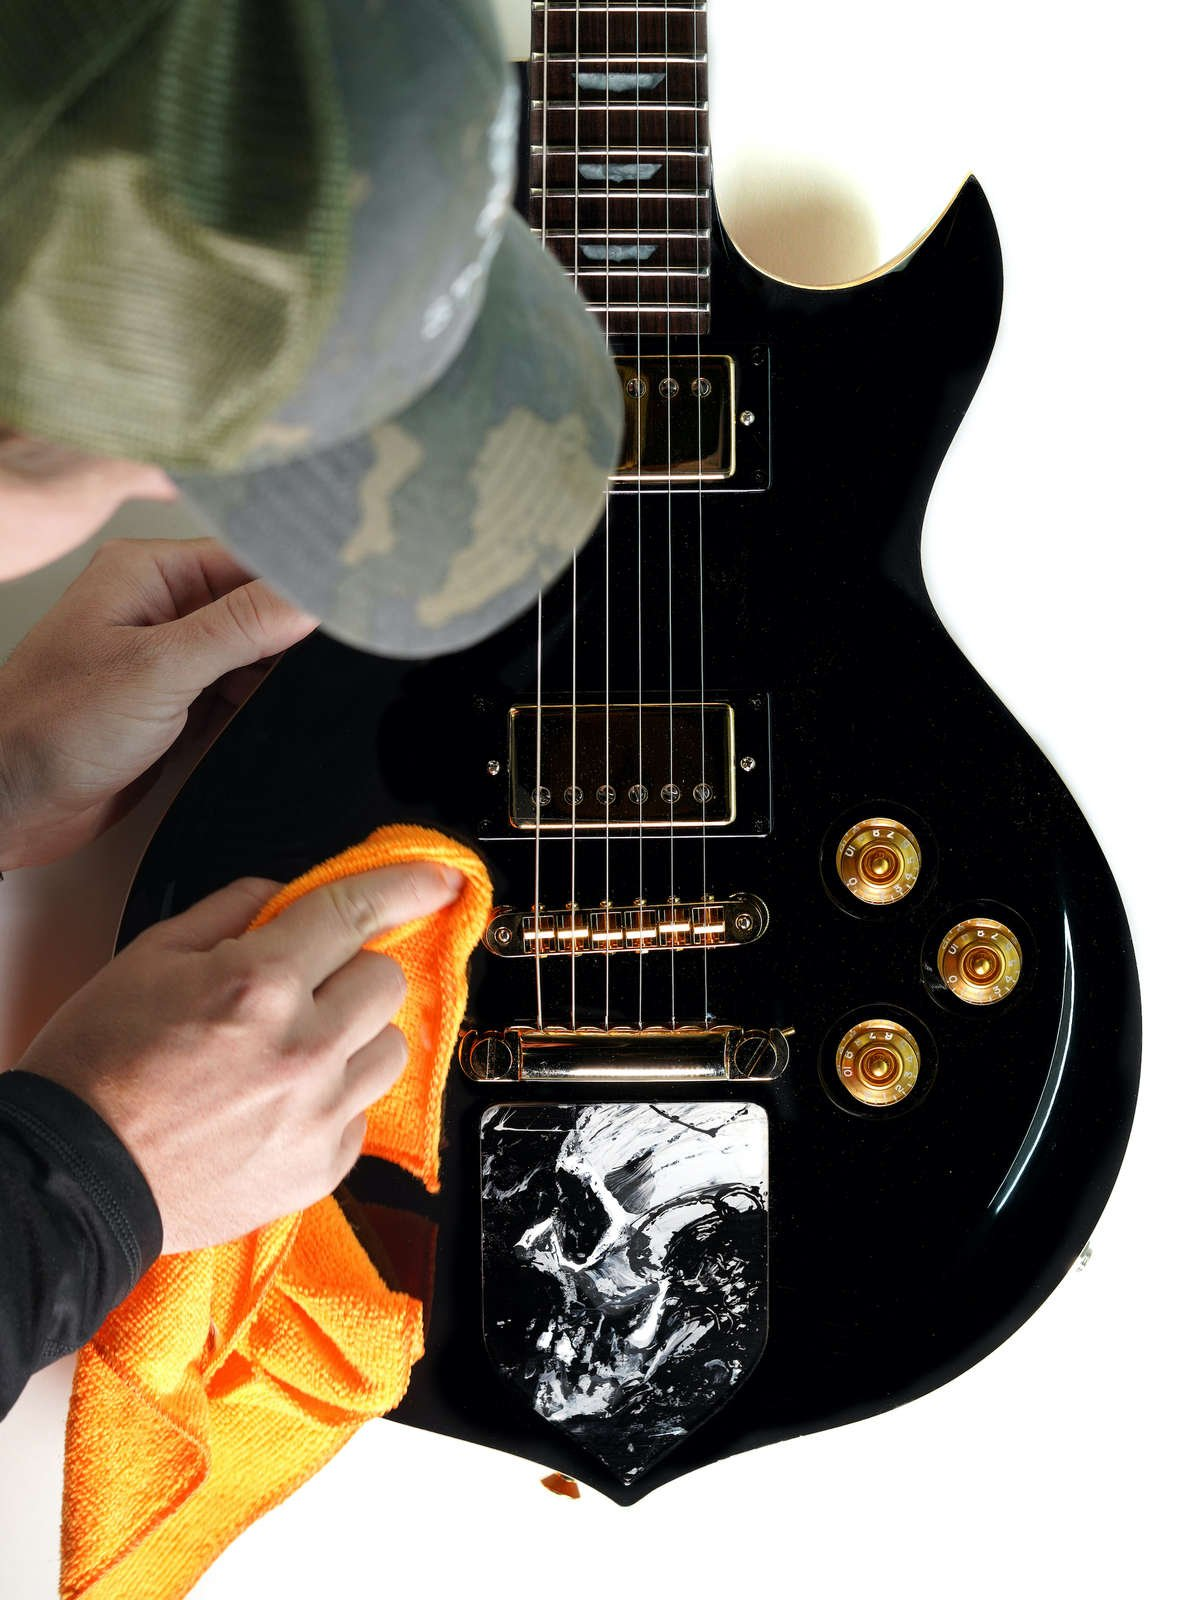 A guitar being polished